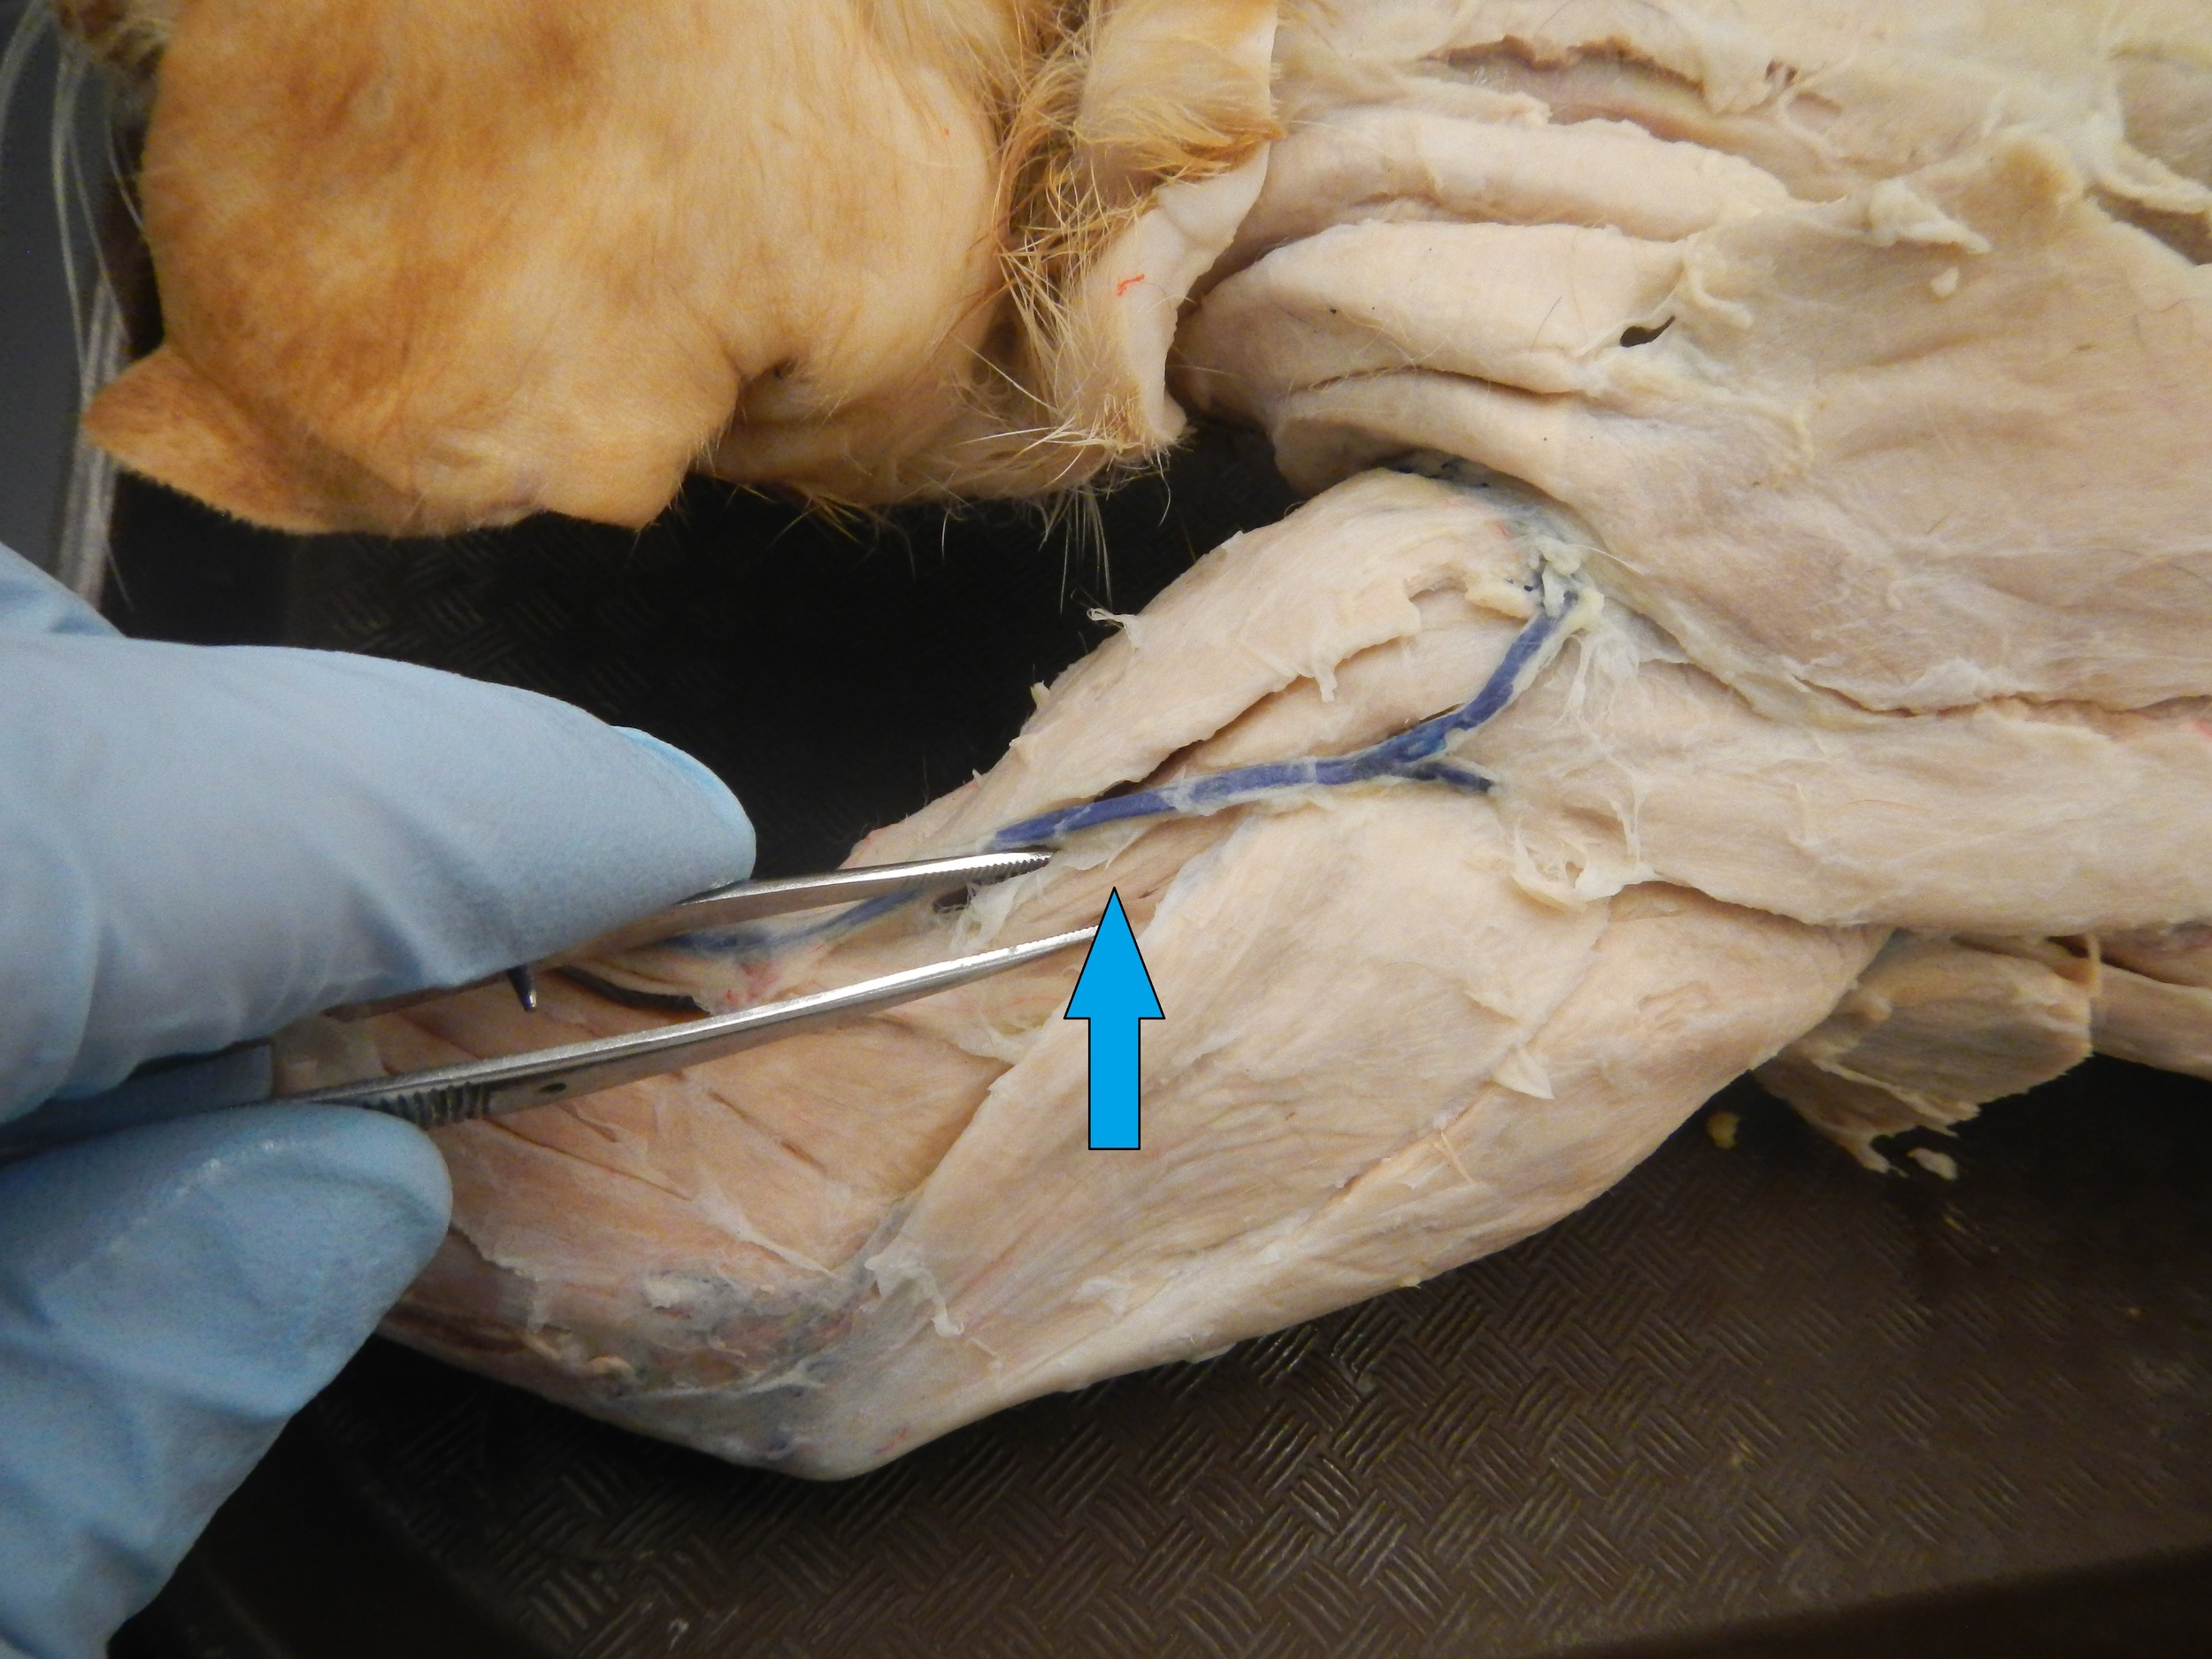 Brachialis   O - Anterior shaft of humerus  I - Coronoid process of ulna and ulnar tuberosity  F - Elbow flexion